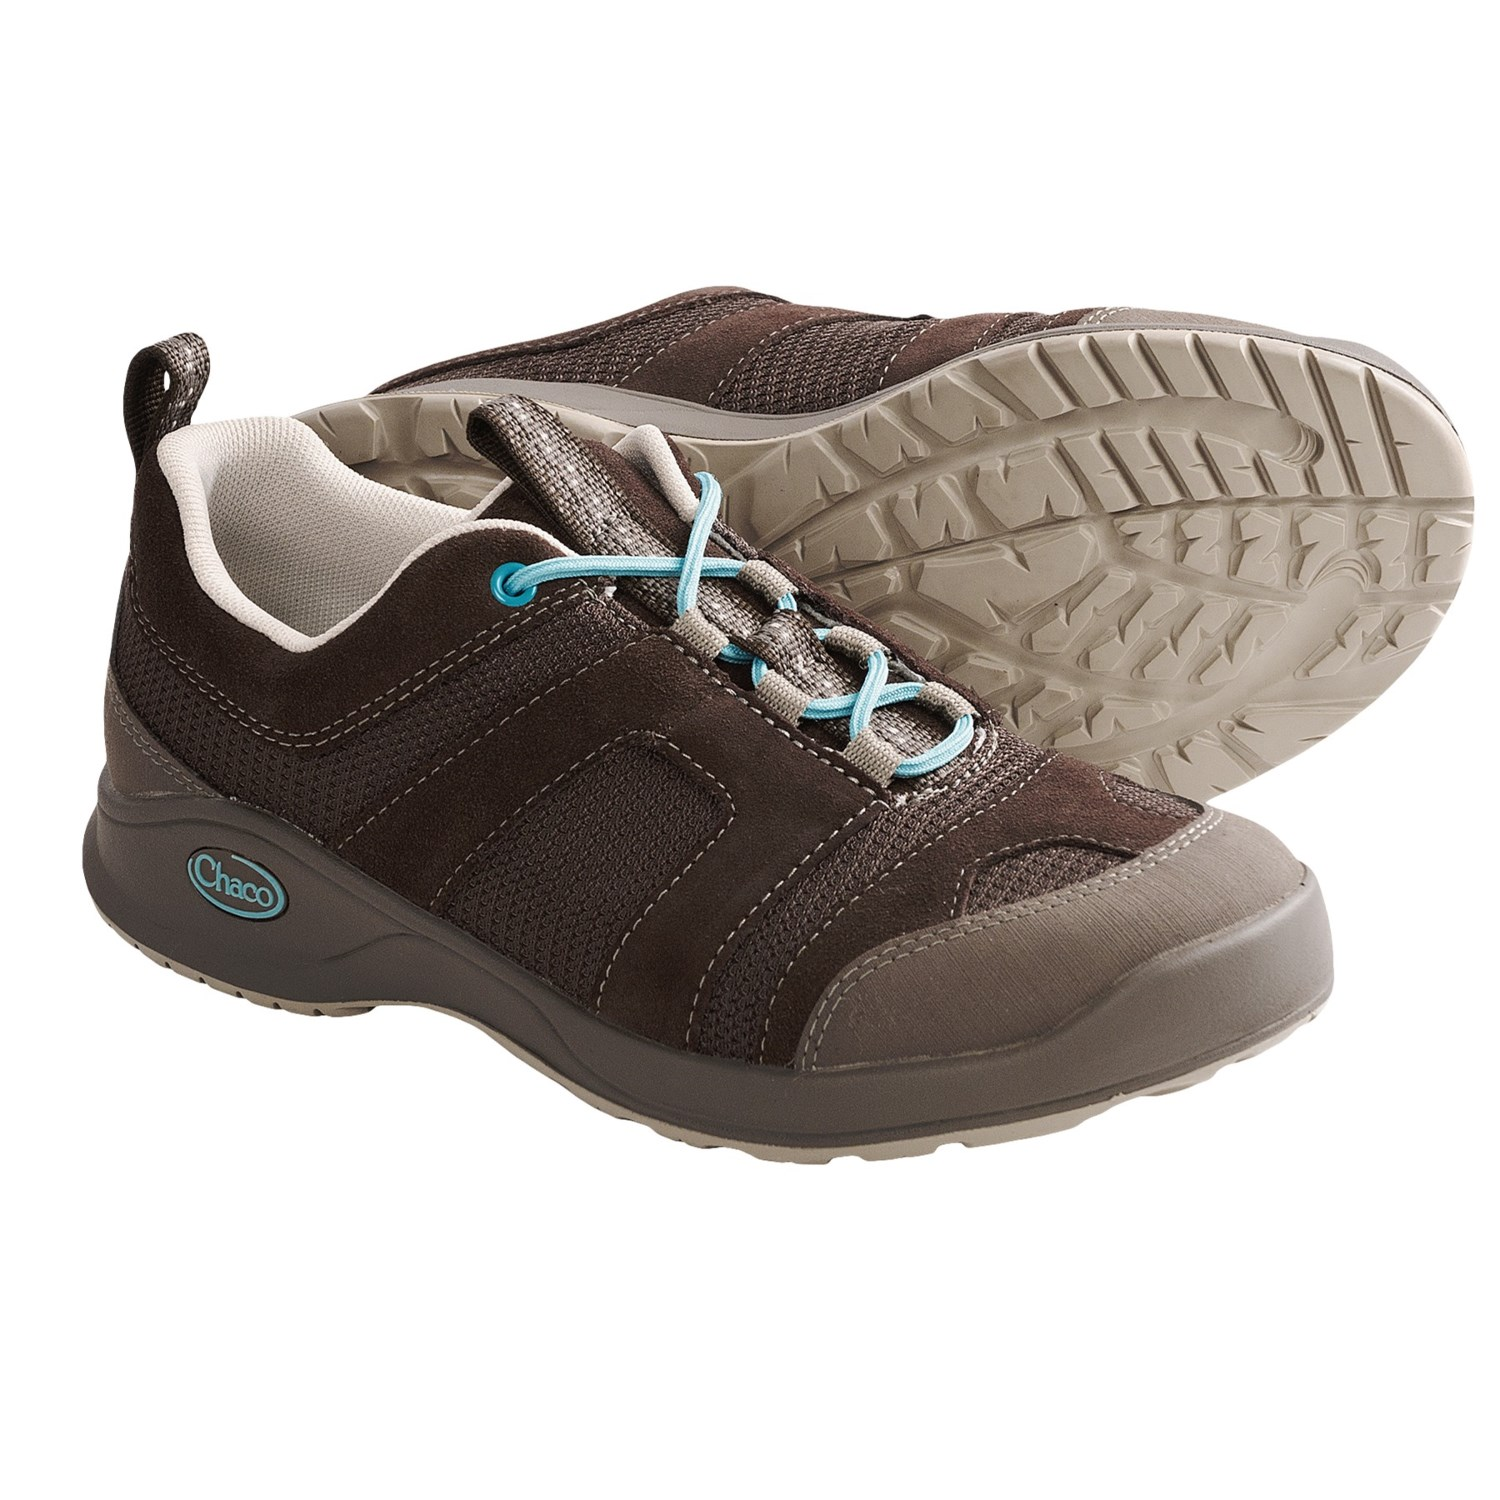 chaco vade bulloo shoes for save 47